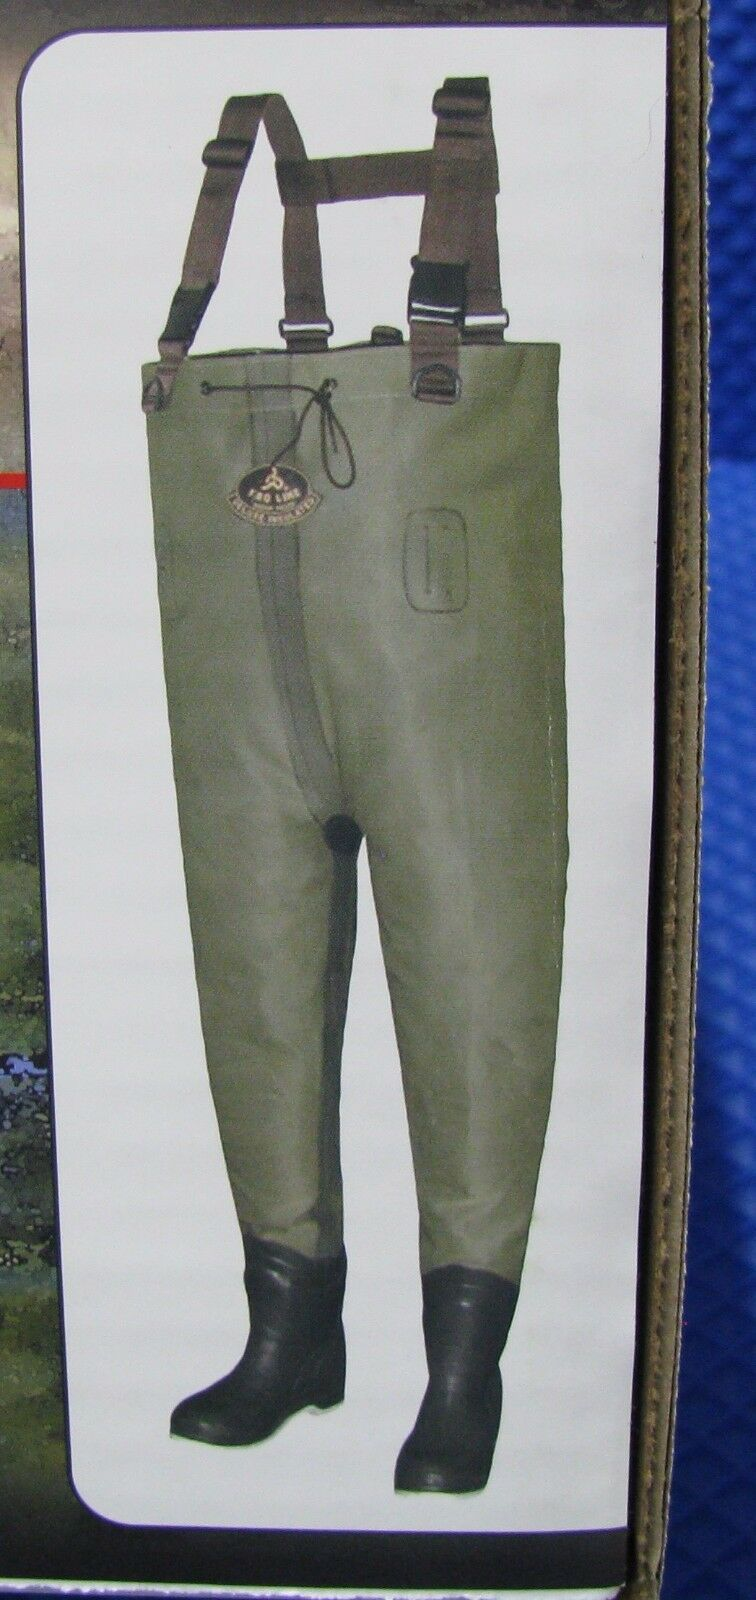 Pro Line Proliners 3-Ply  Stretch Wader Sizes 10-13 KHK  low 40% price